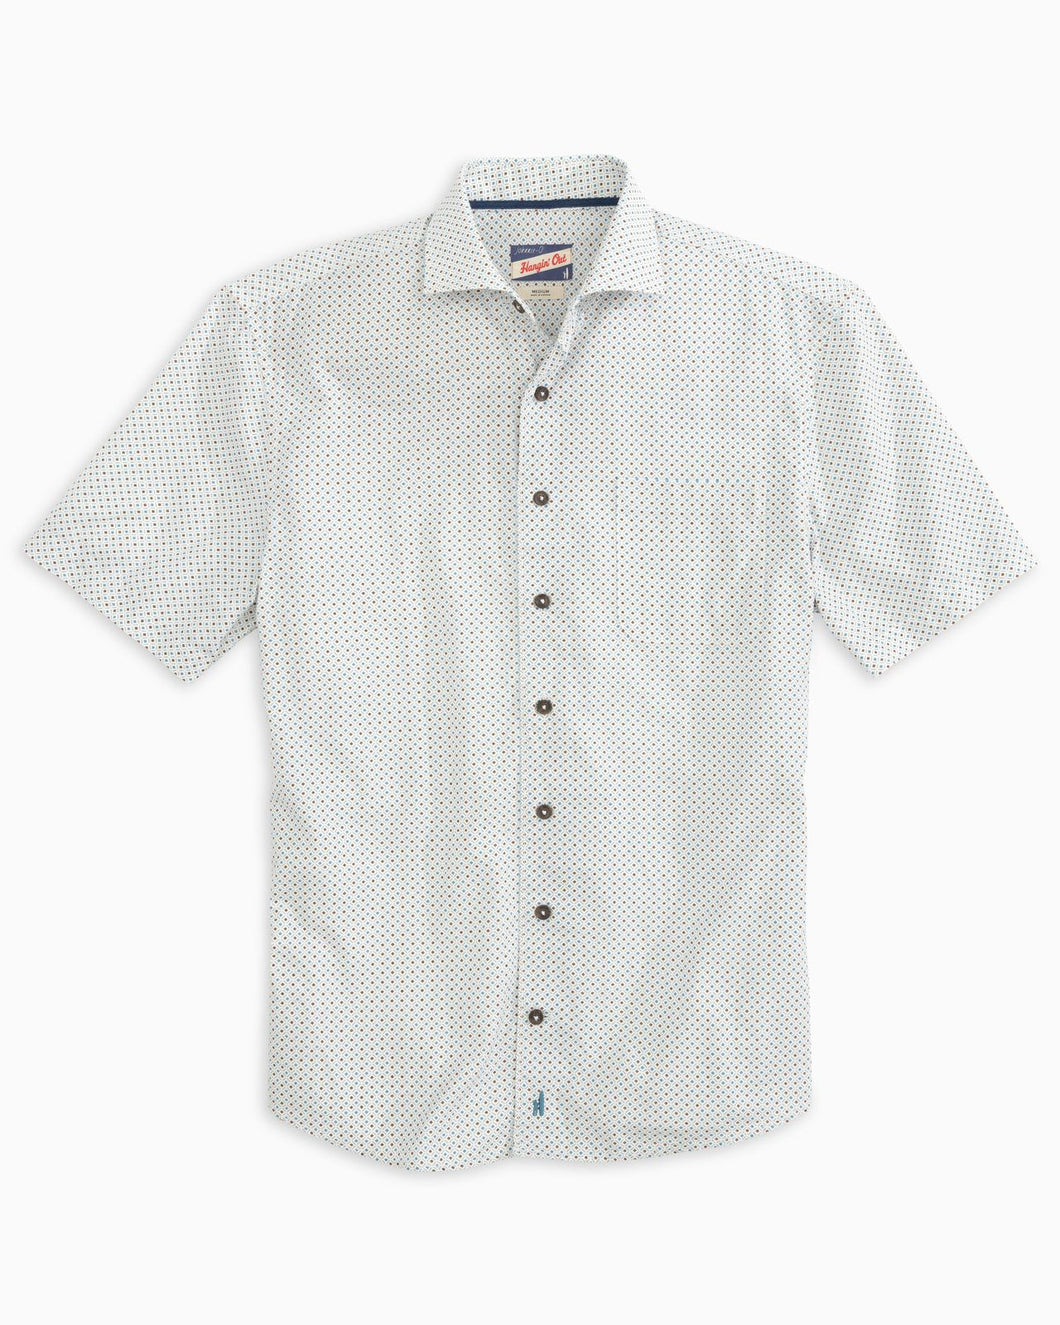 Johnnie O - Depew SS Button down - White - Liam John USA